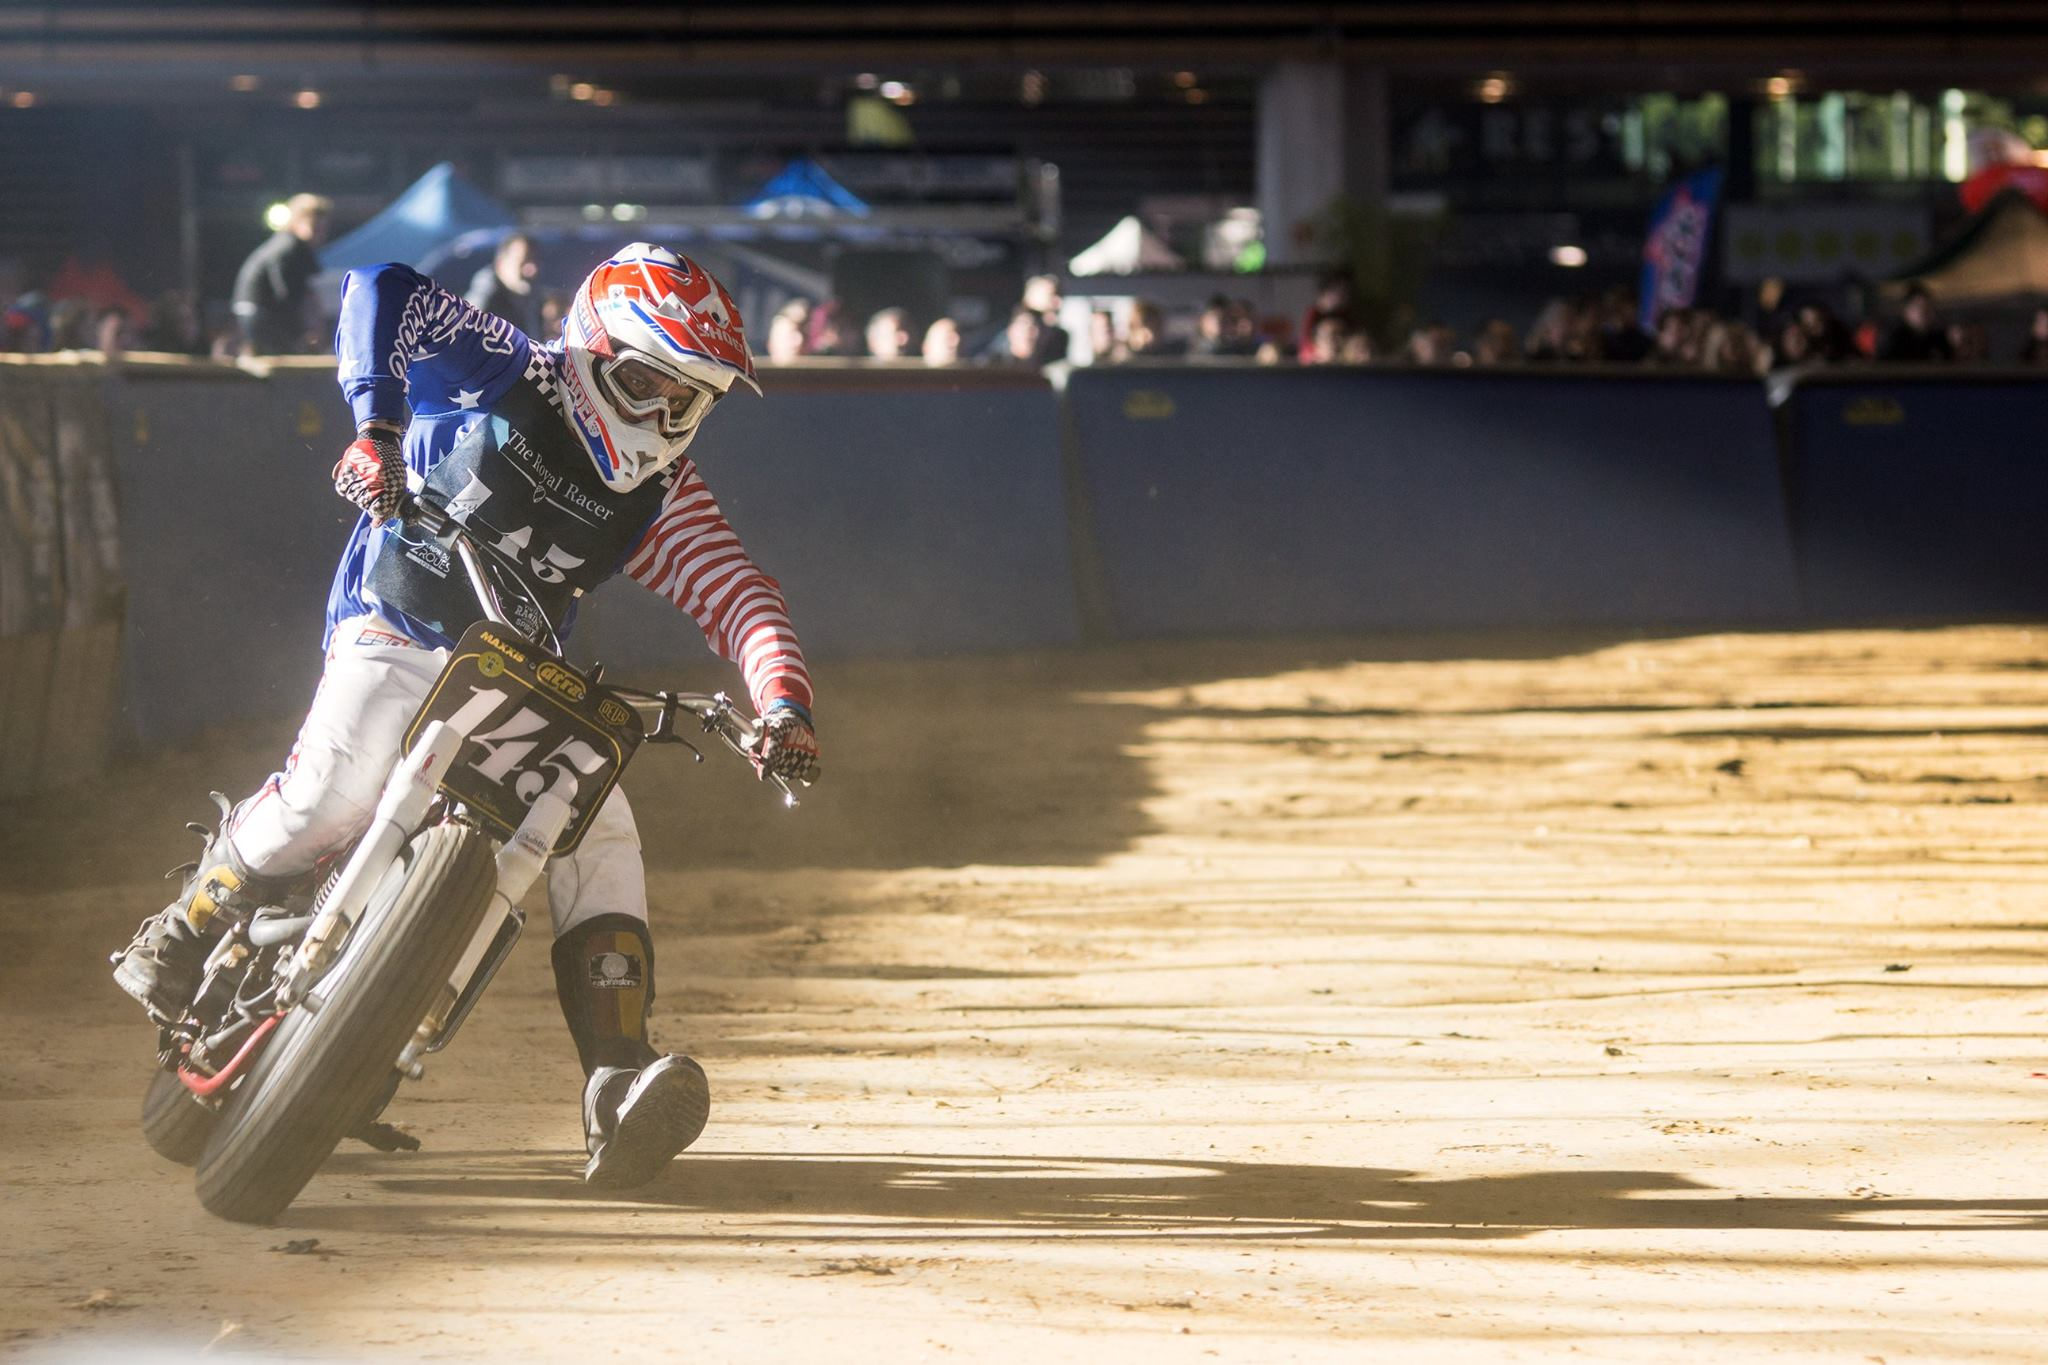 Ripping up the track...  Image by   Nicolas Serre Photographie